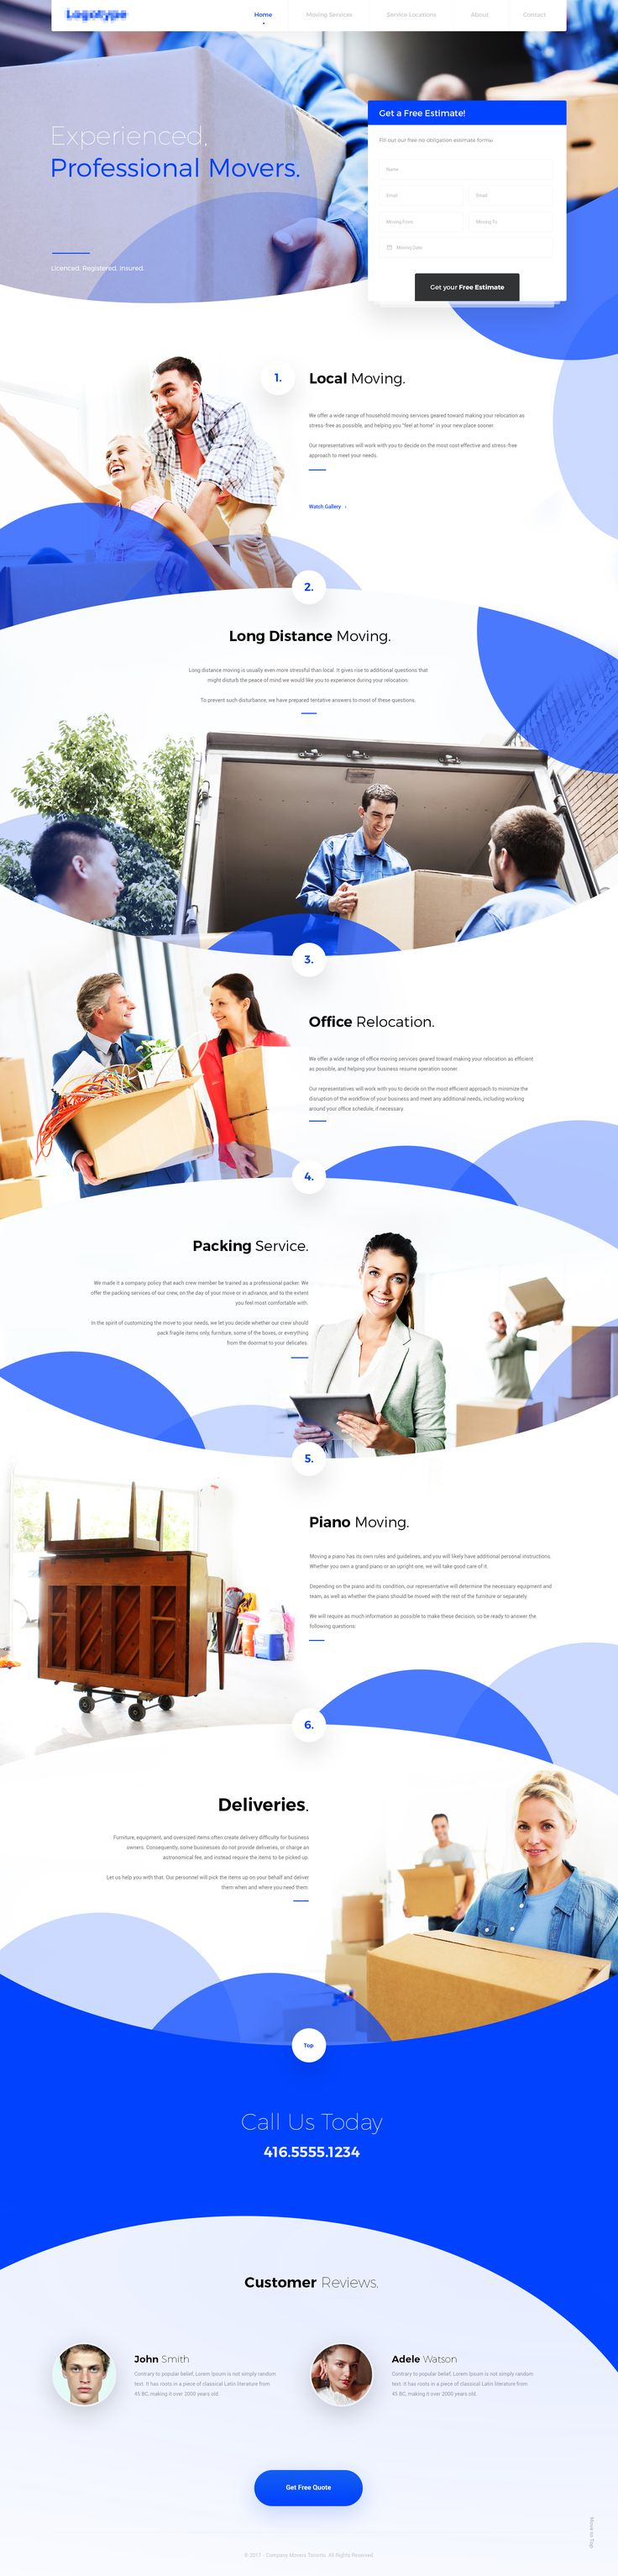 Delivery Company #website #webdesign #layout